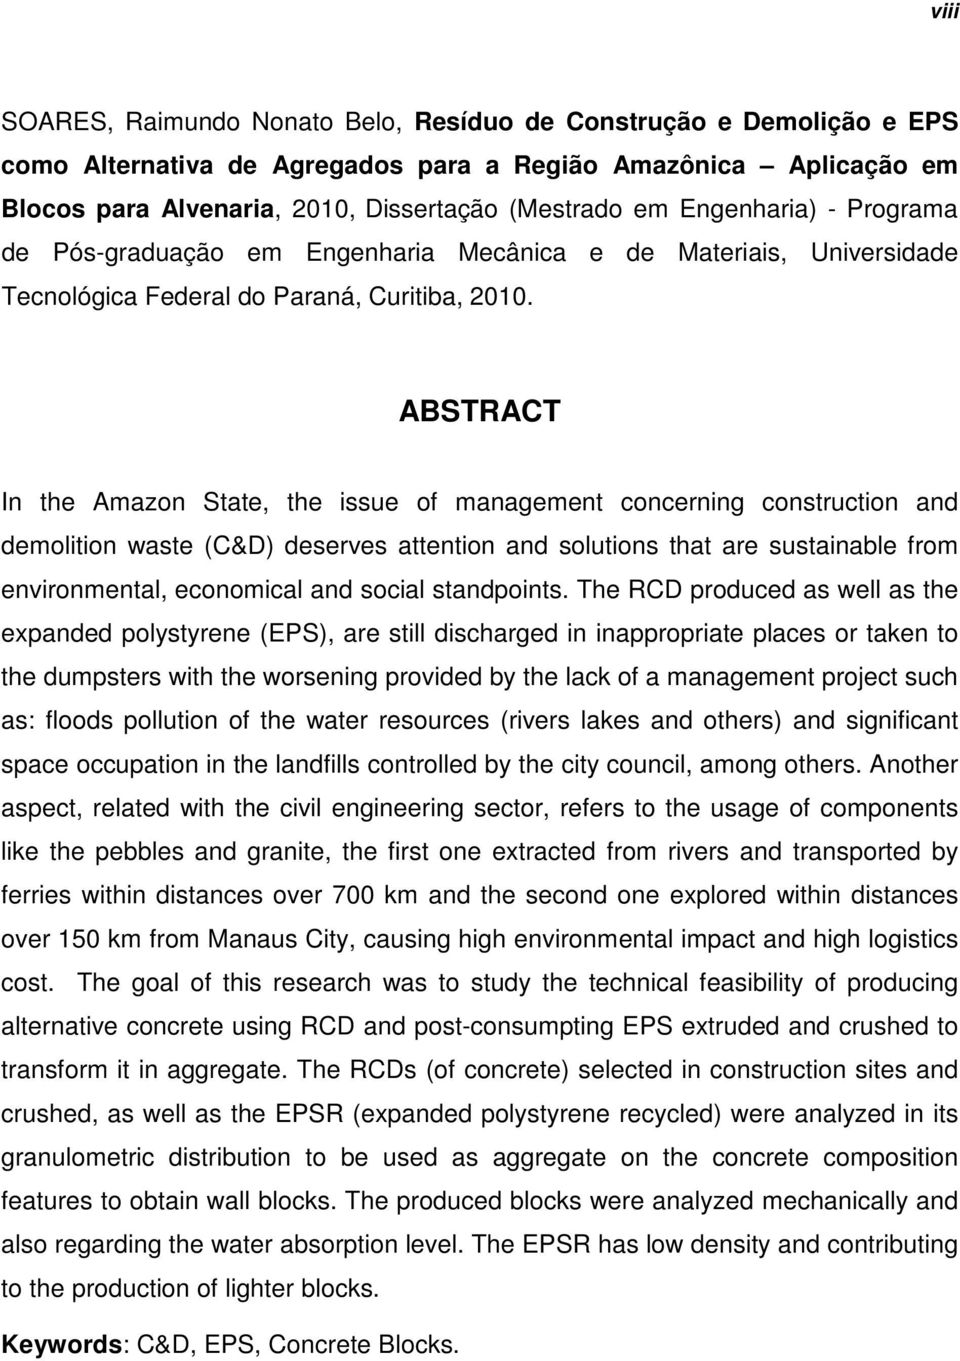 ABSTRACT In the Amazon State, the issue of management concerning construction and demolition waste (C&D) deserves attention and solutions that are sustainable from environmental, economical and